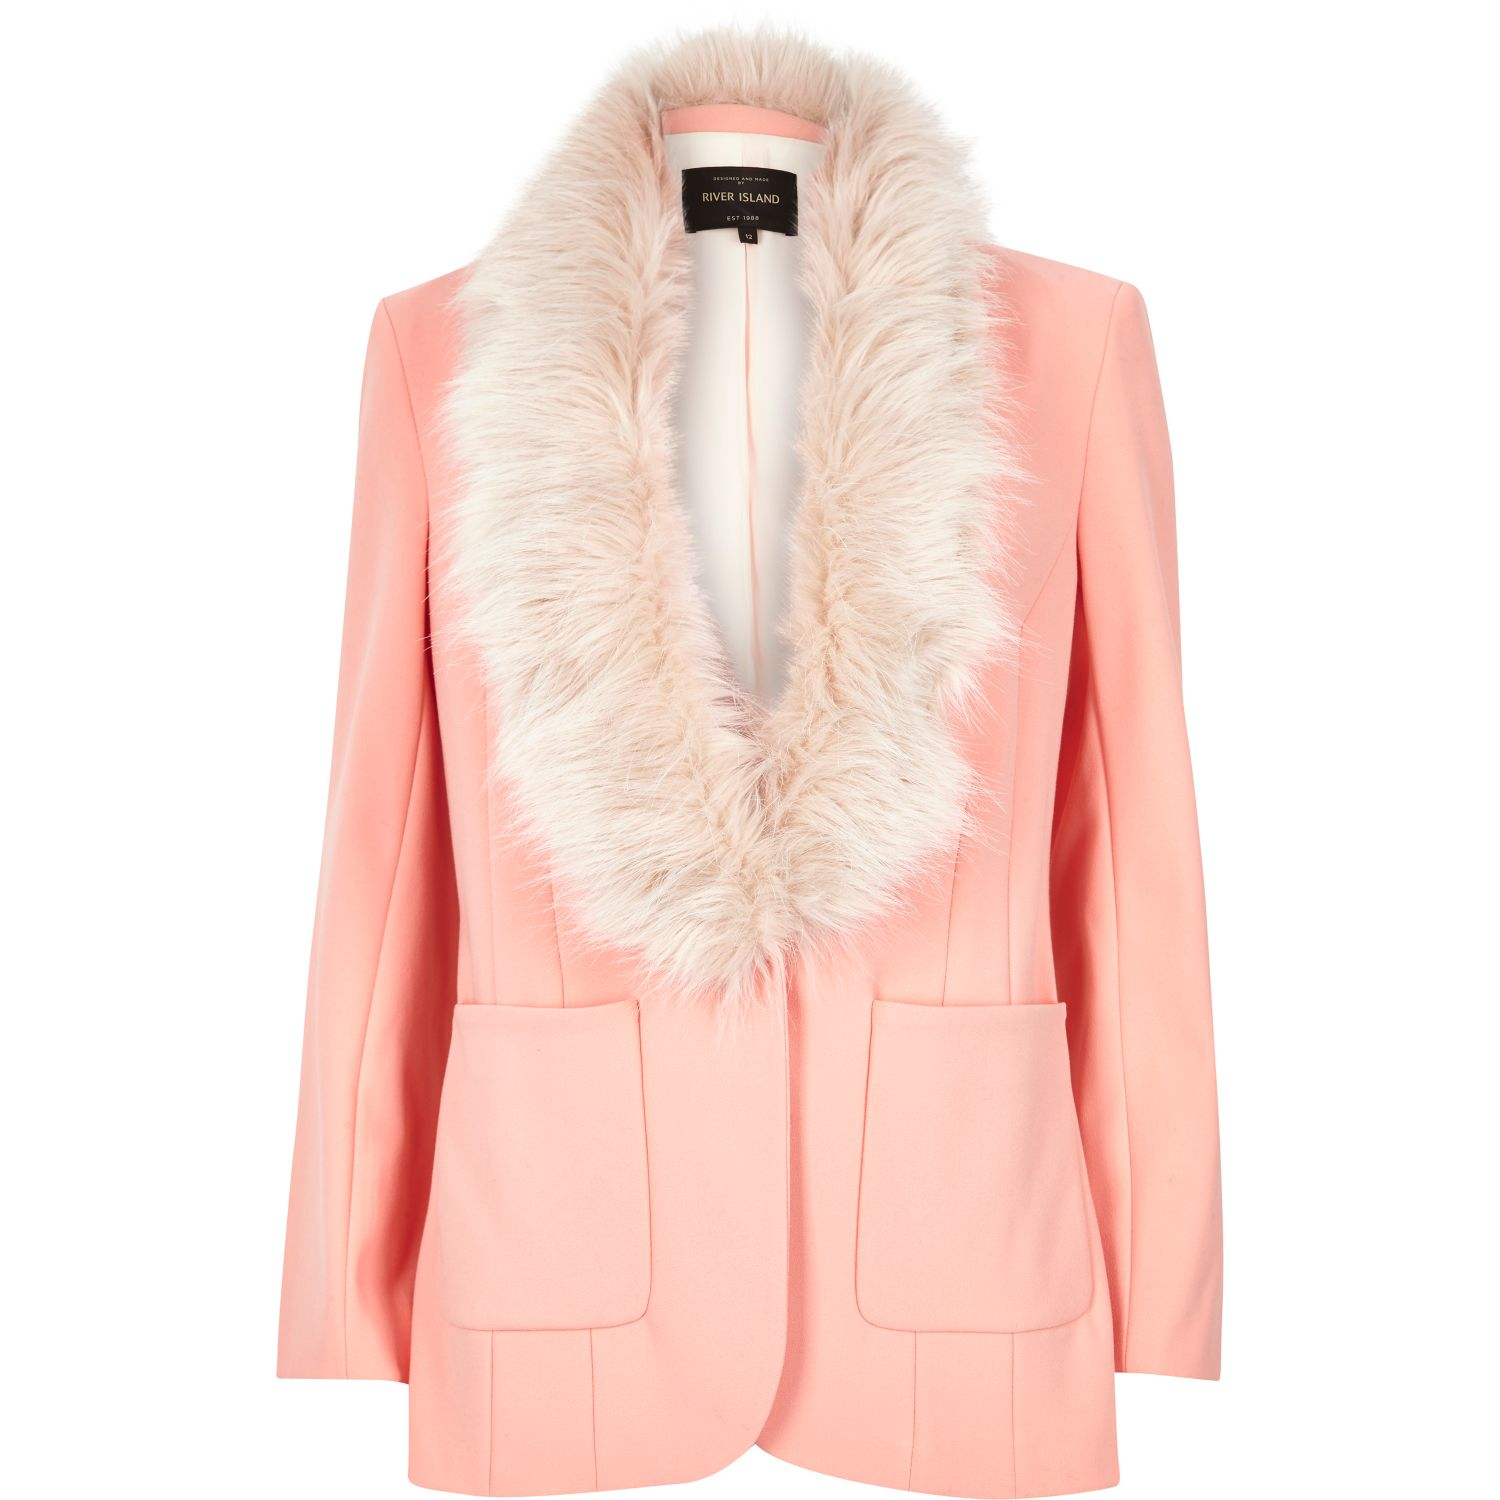 River island Pink Faux Fur Fitted Blazer in Pink | Lyst